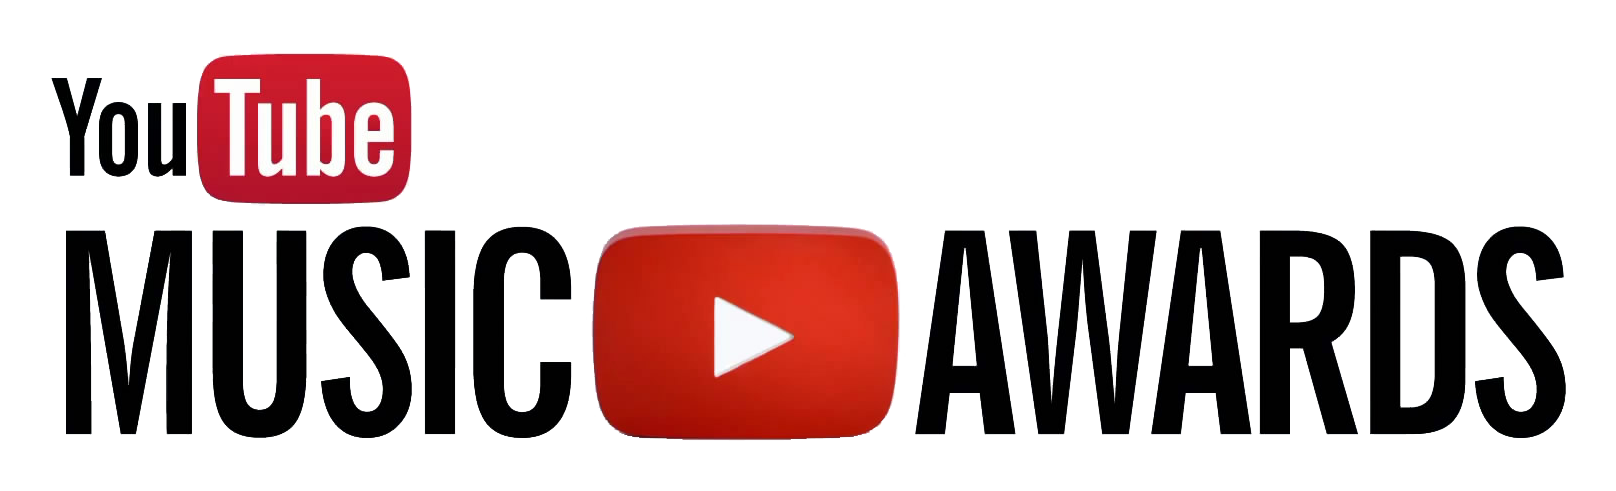 File:YouTube Music Awards.png.